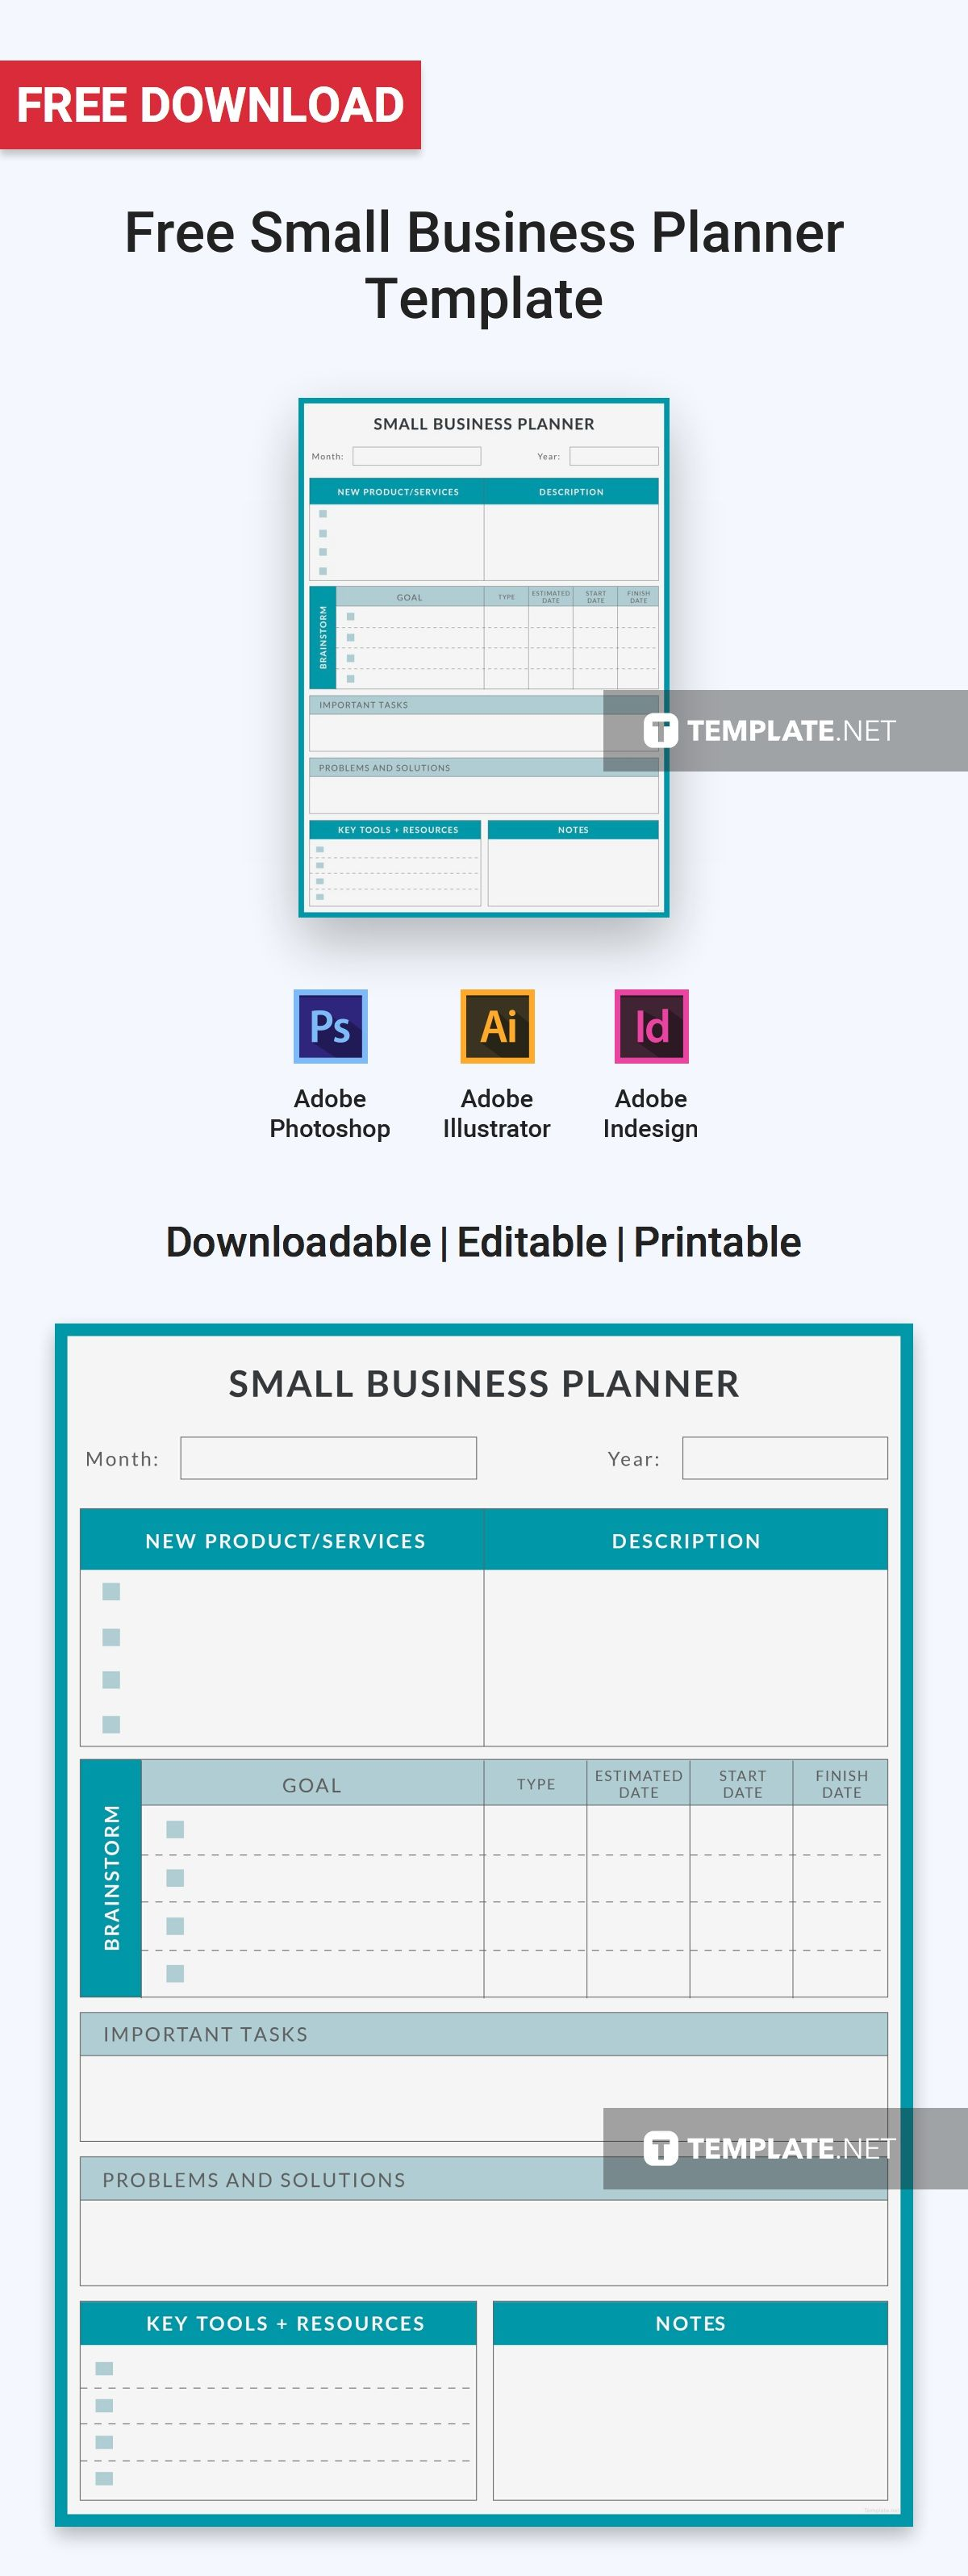 Free Small Business Planner Business planner, Planner